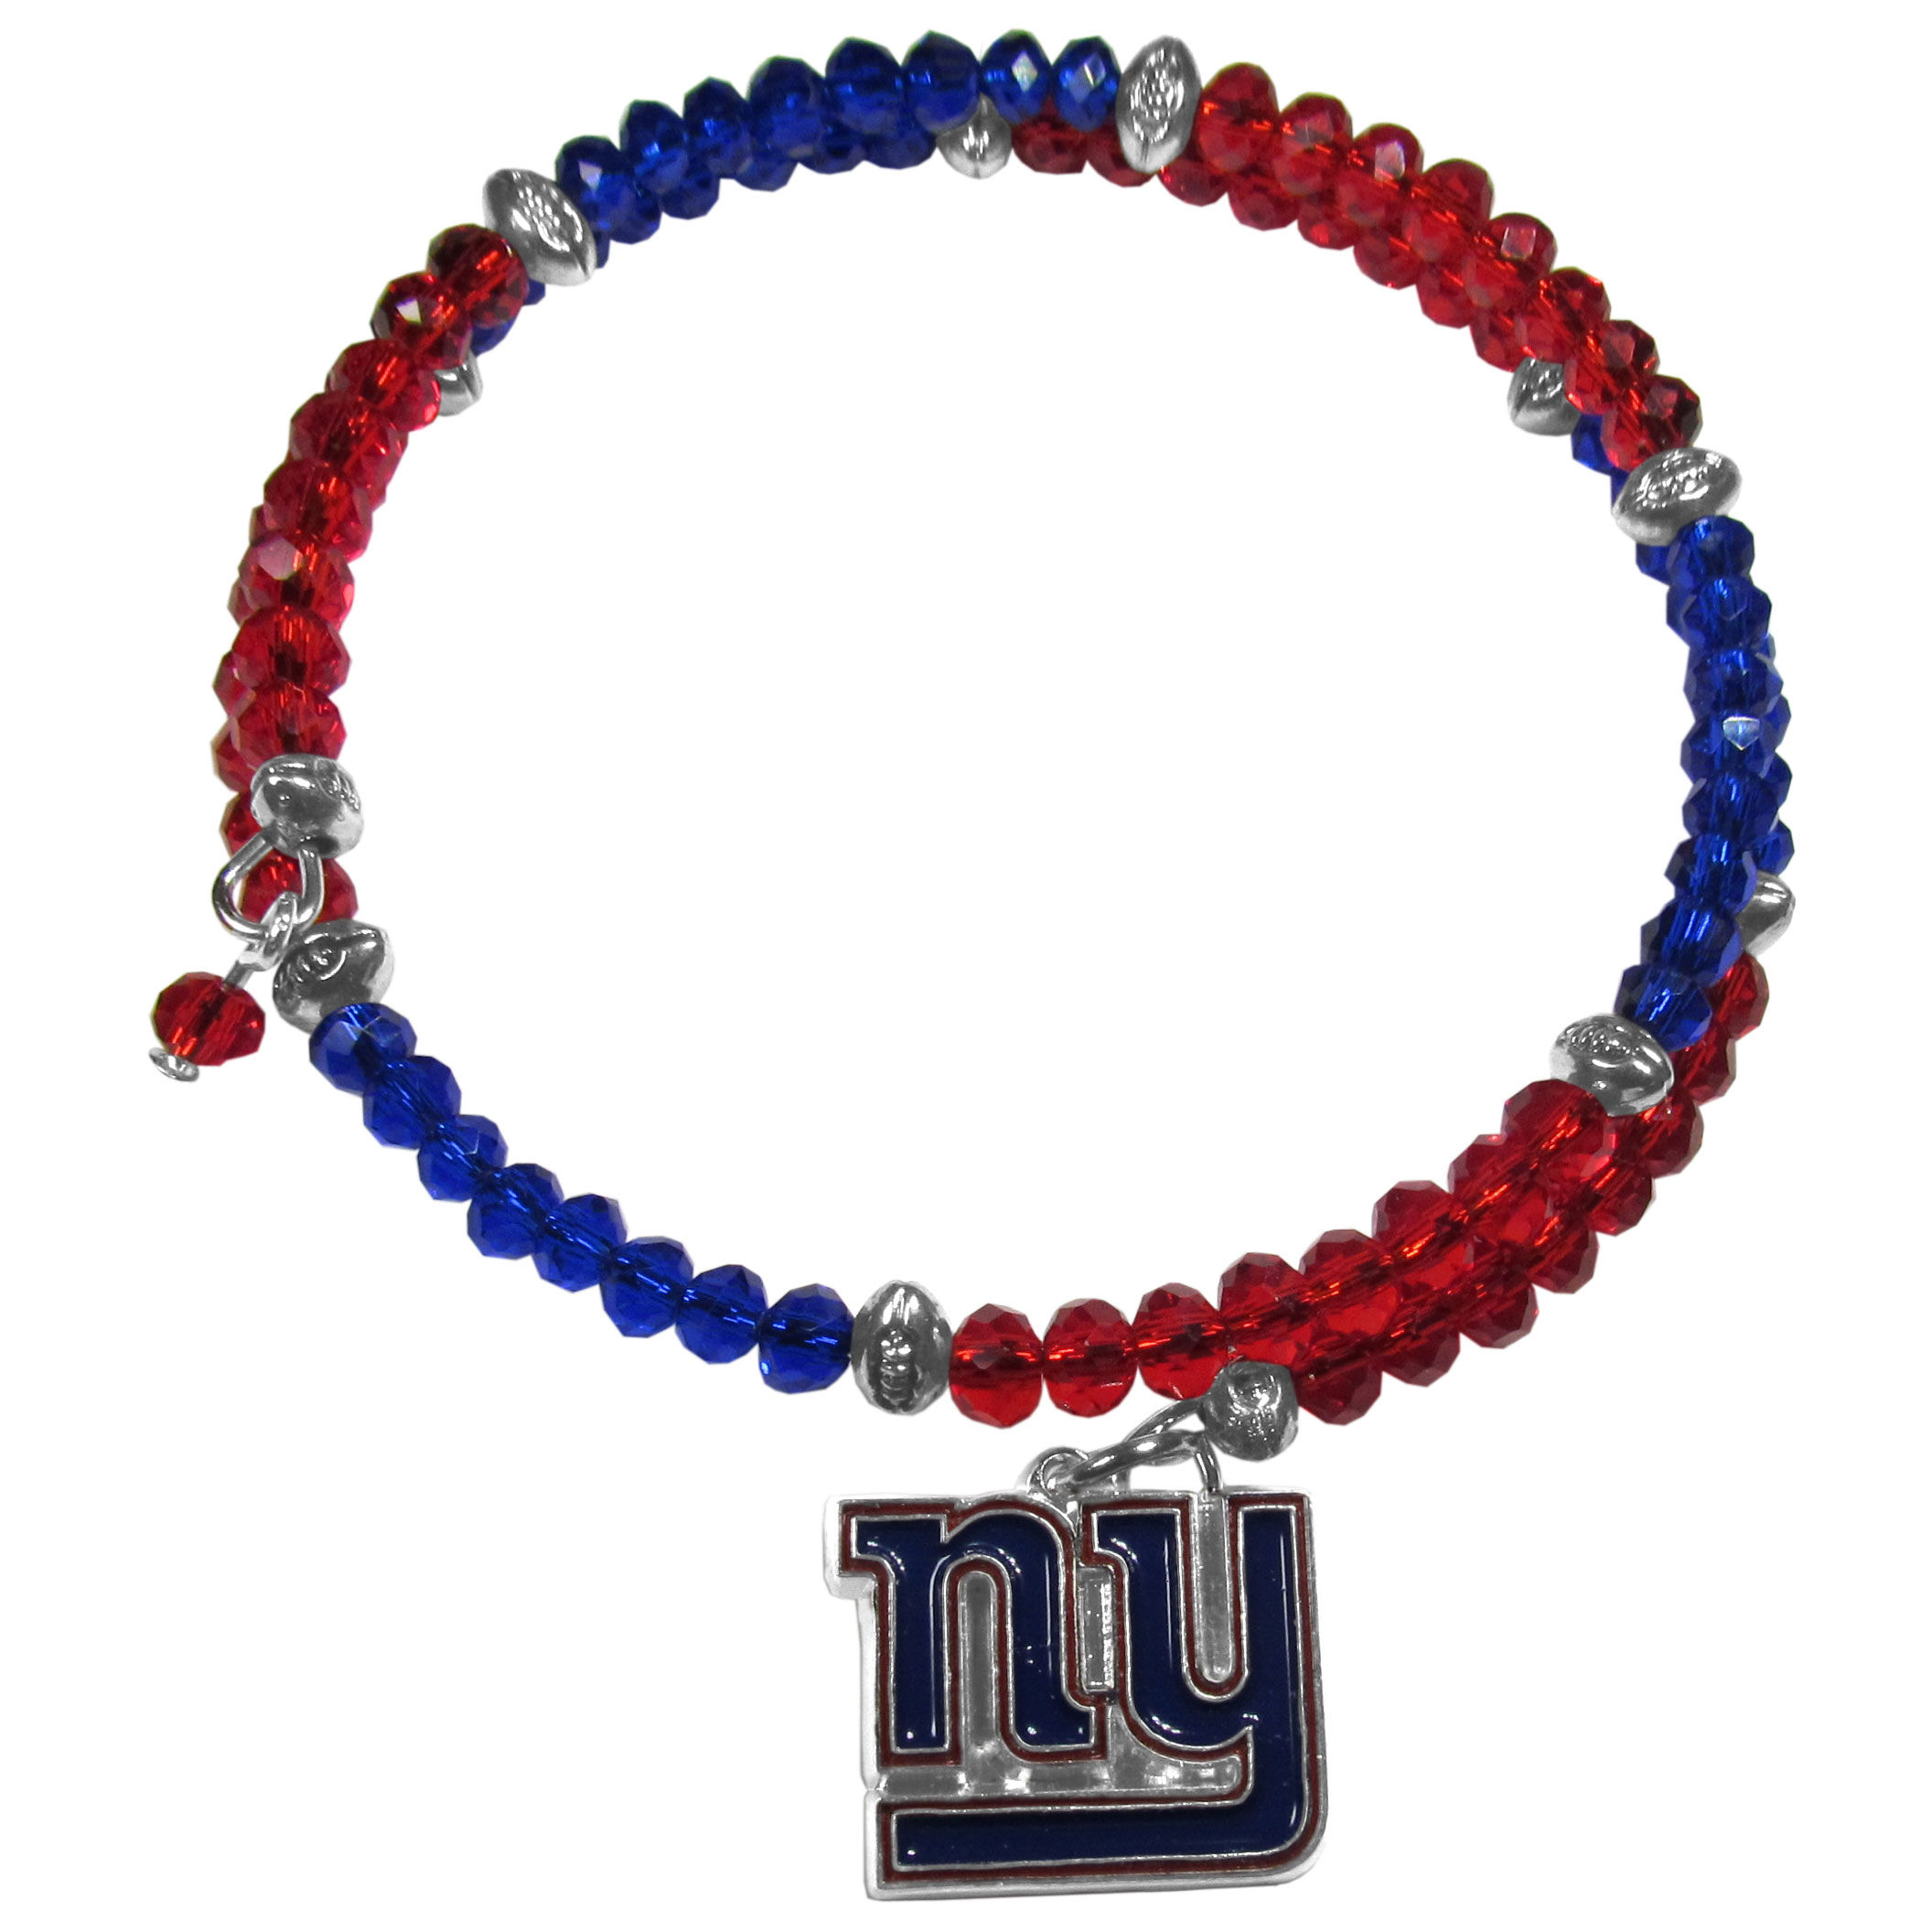 New York Giants Crystal Memory Wire Bracelet - Our New York Giants memory wire crystal bracelet is trendy way to show off your love of the game. The double wrap bracelet is completely covered in 4 mm crystals that are broken up with adorable football beads creating a designer look with a sporty twist. The bracelet features a fully cast, metal team charm that has expertly enameled team colors. This fashion jewelry piece is a must-have for the die-hard fan that chic look that can dress up any outfit.